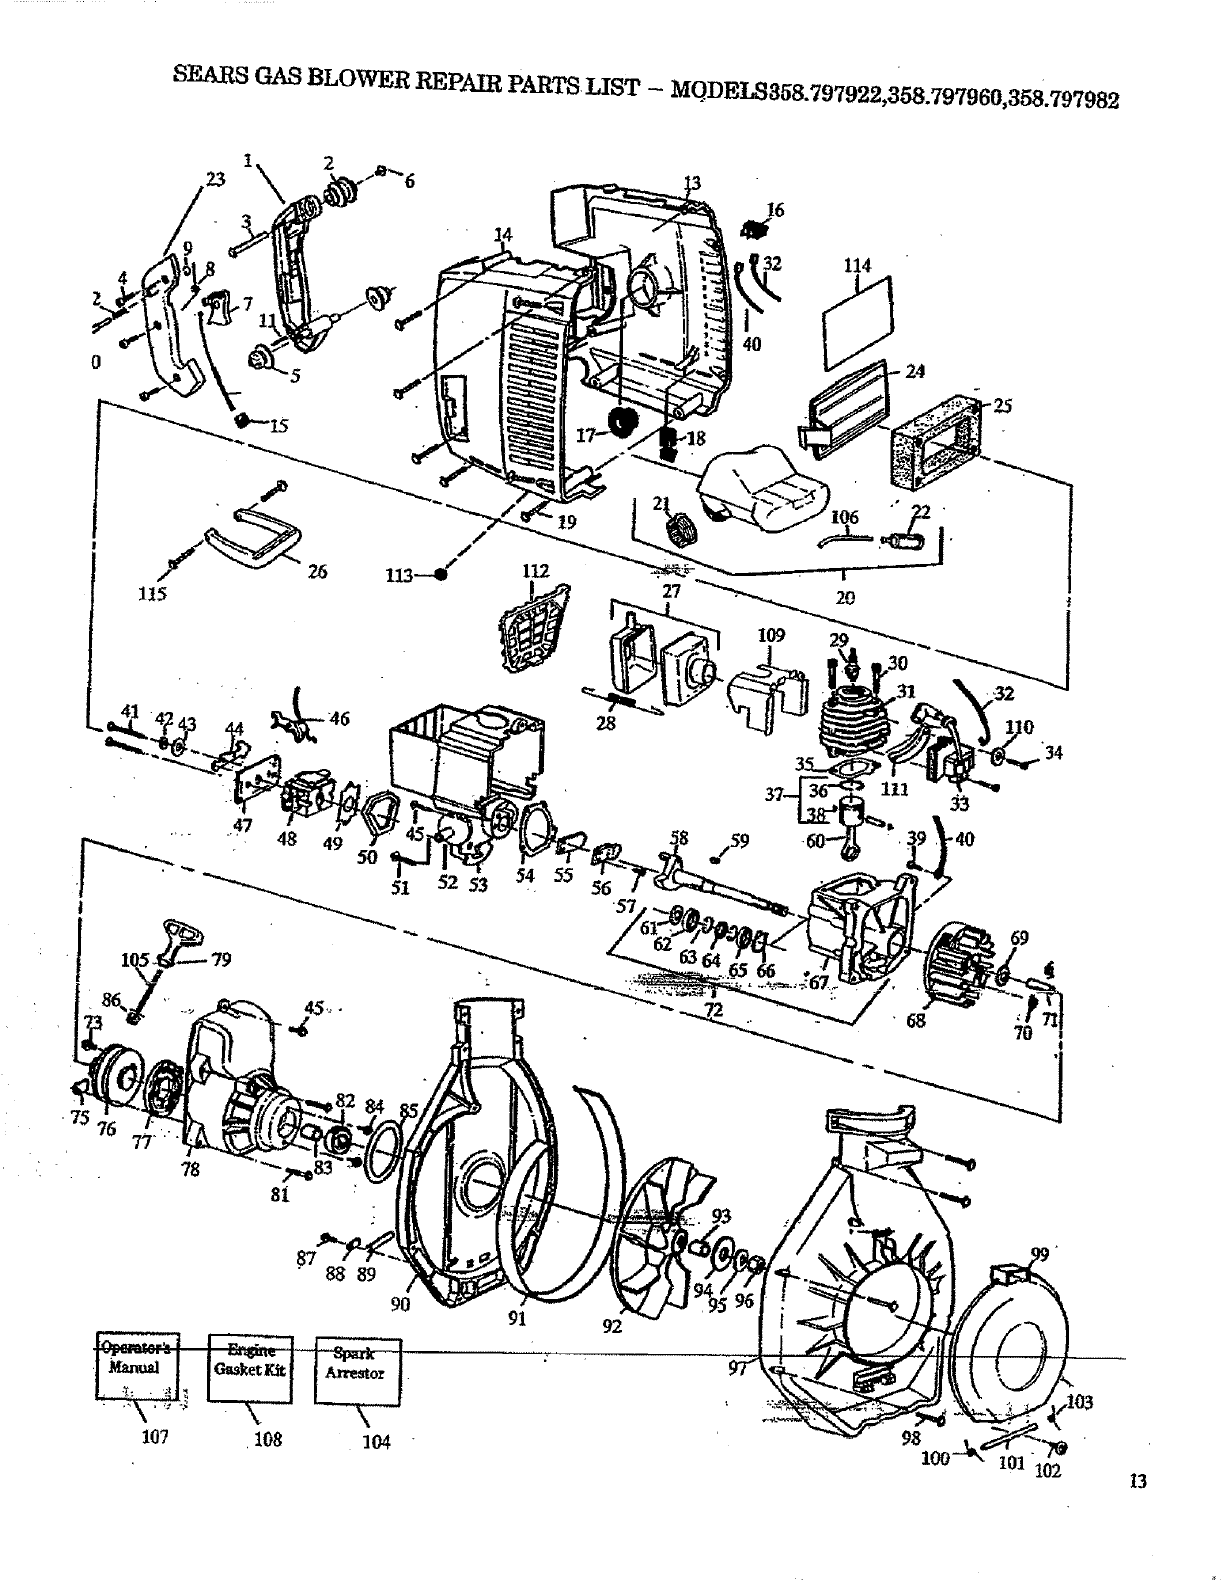 Page 13 of Craftsman Blower 358.797921 User Guide